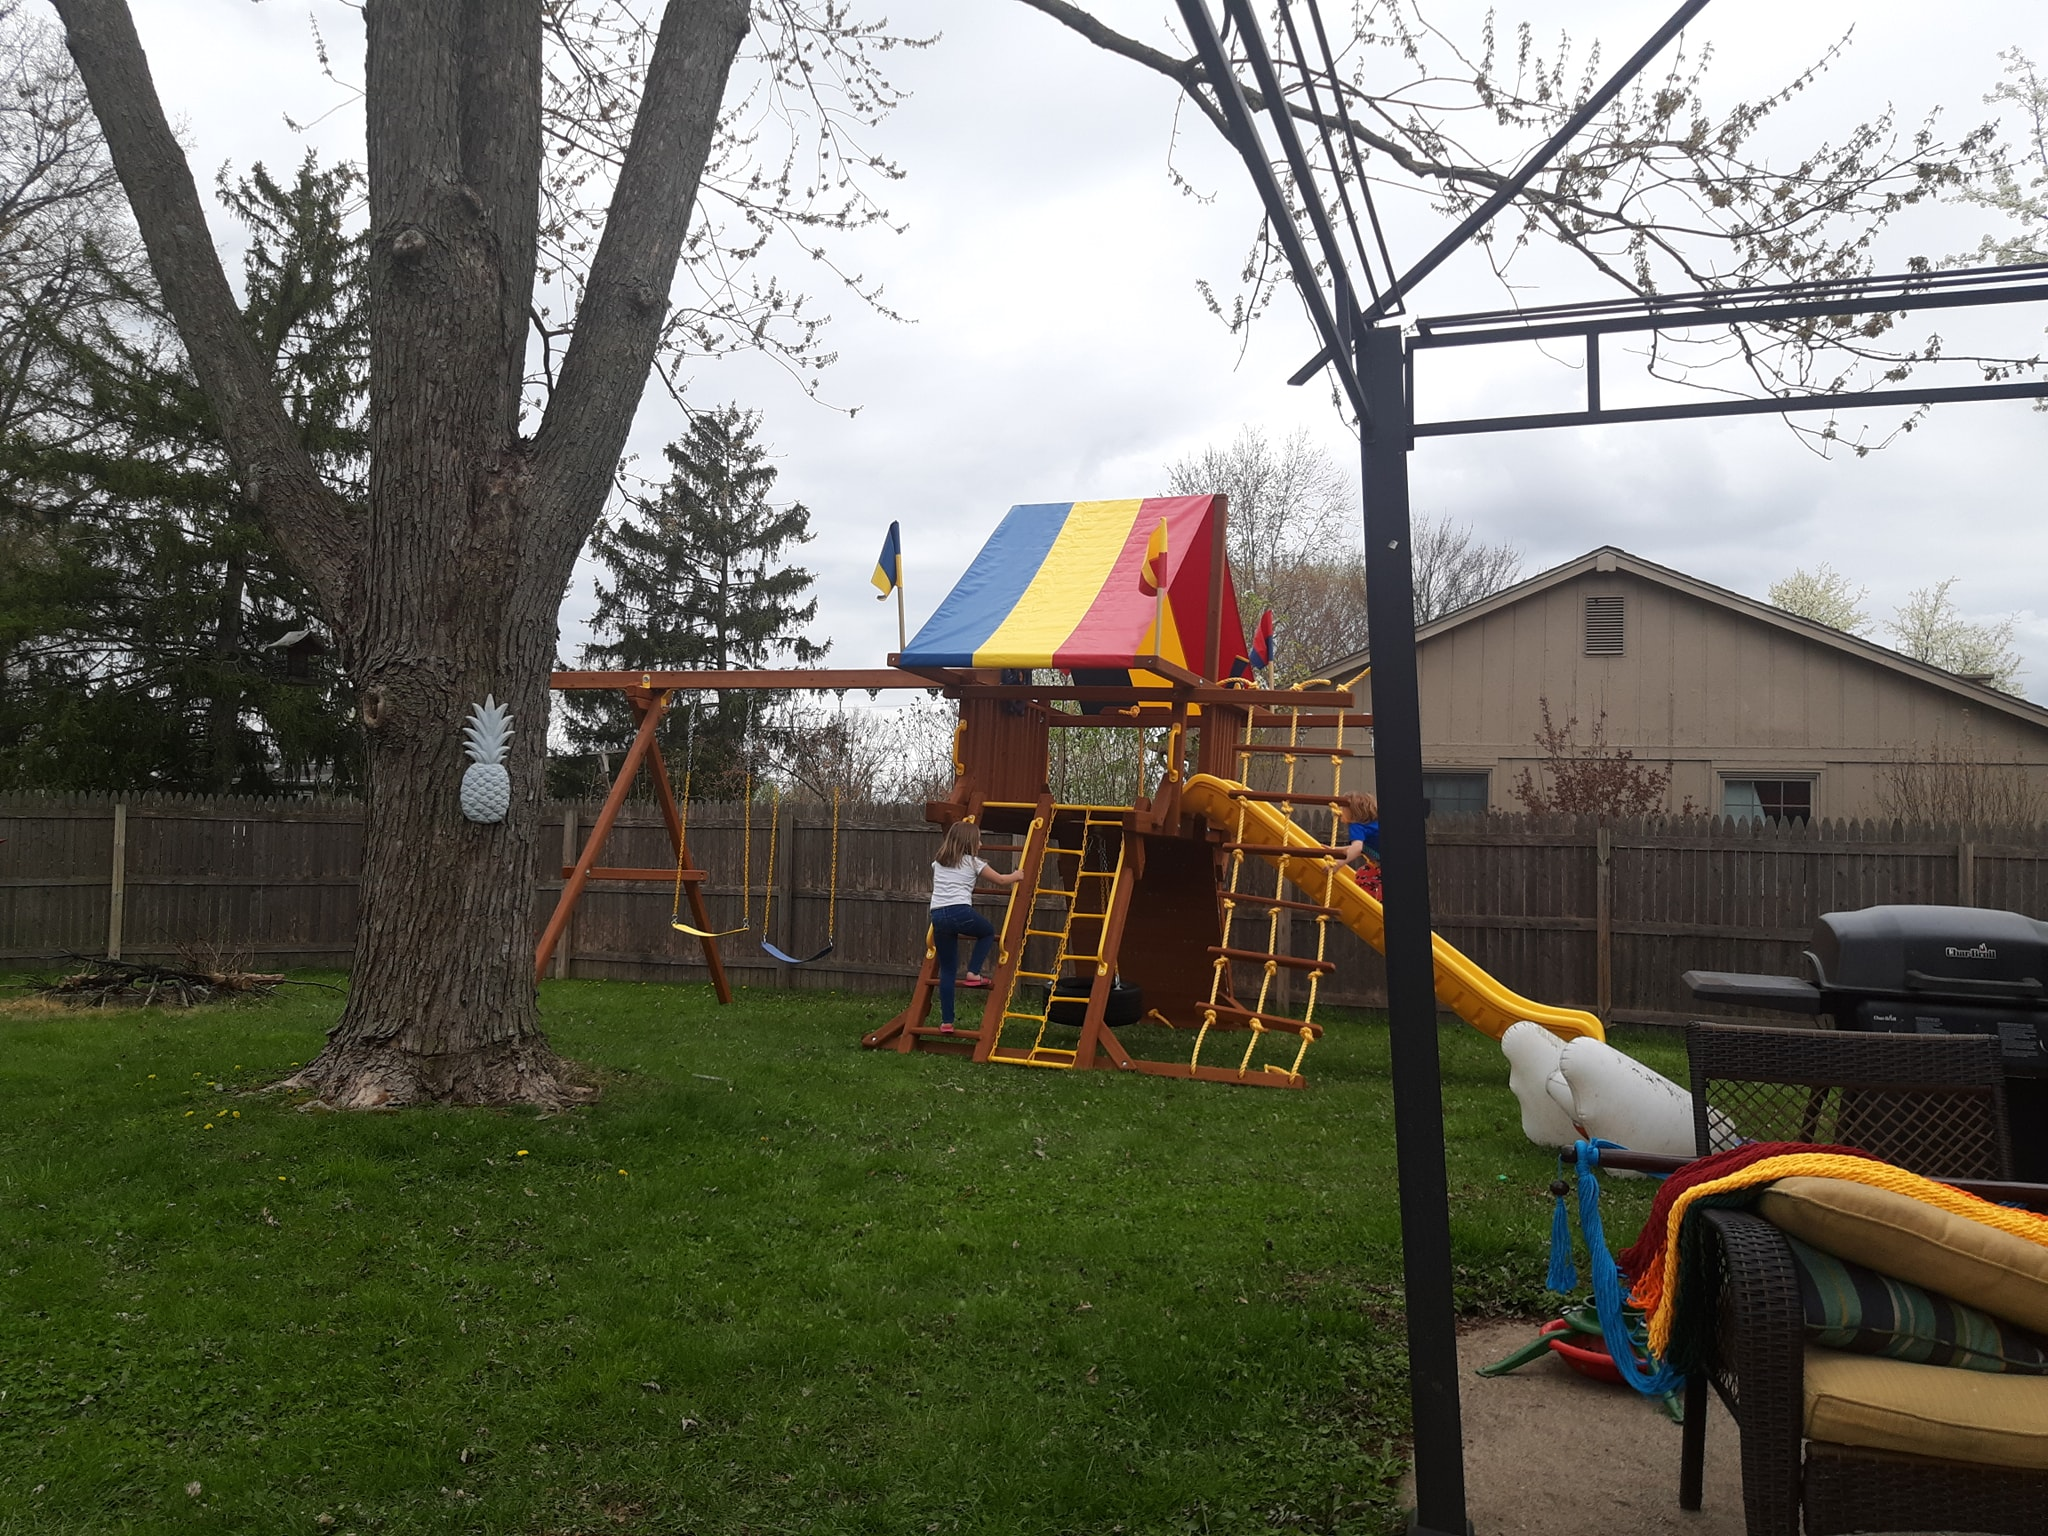 Ace Game Room Gallery - Rainbow Play Systems Swing Set